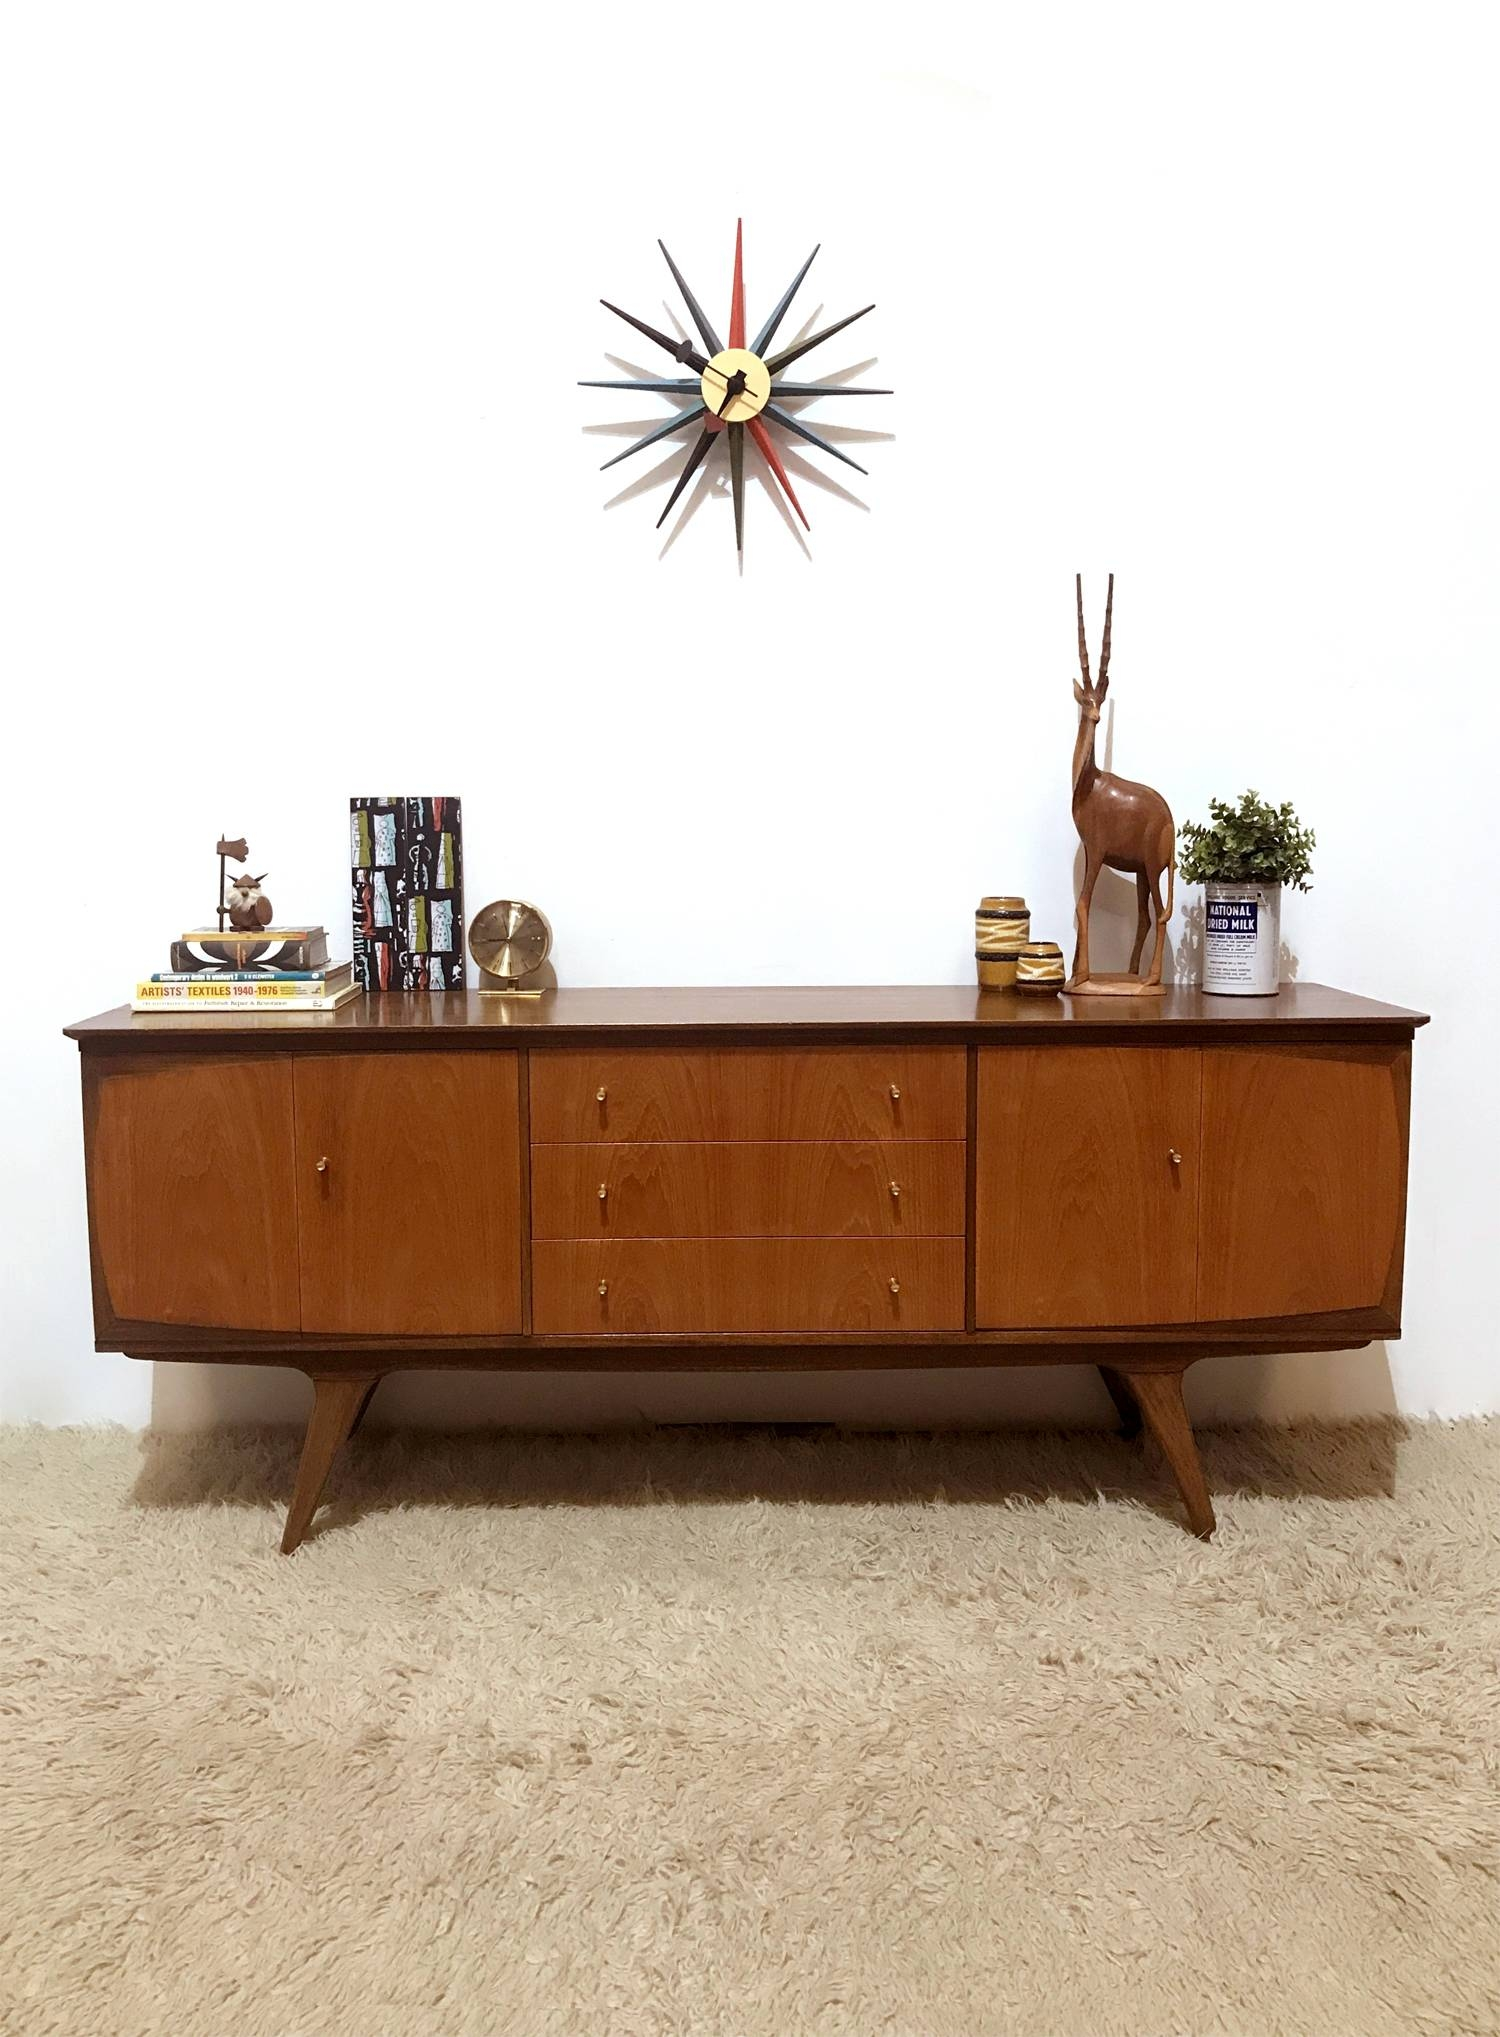 50s 60s Outstanding Mid Century Vintage Bi Folding Doors Sideboard Within Best And Newest 50s Sideboards (View 5 of 15)